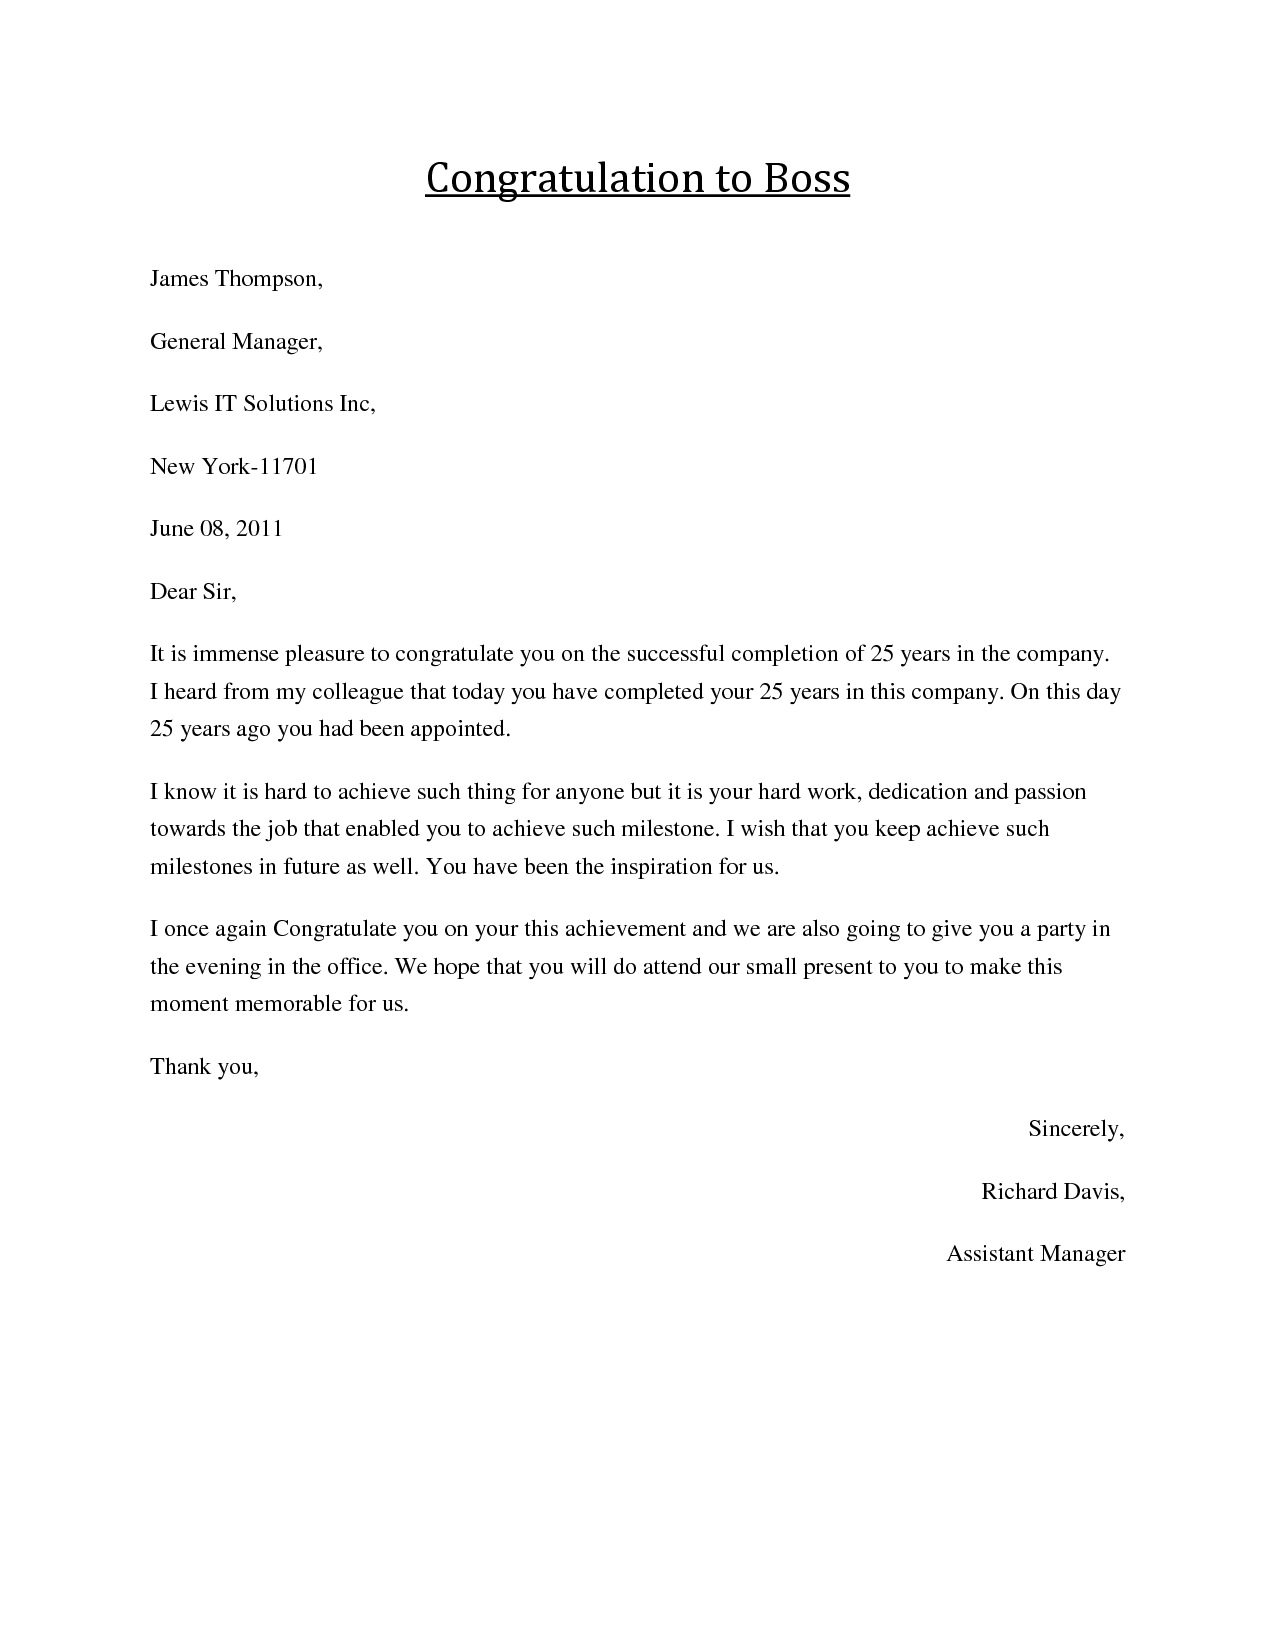 Congratulations letter to boss job congratulations formal congratulations letter to boss job congratulations formal business letters and greeting messages to boss kristyandbryce Images